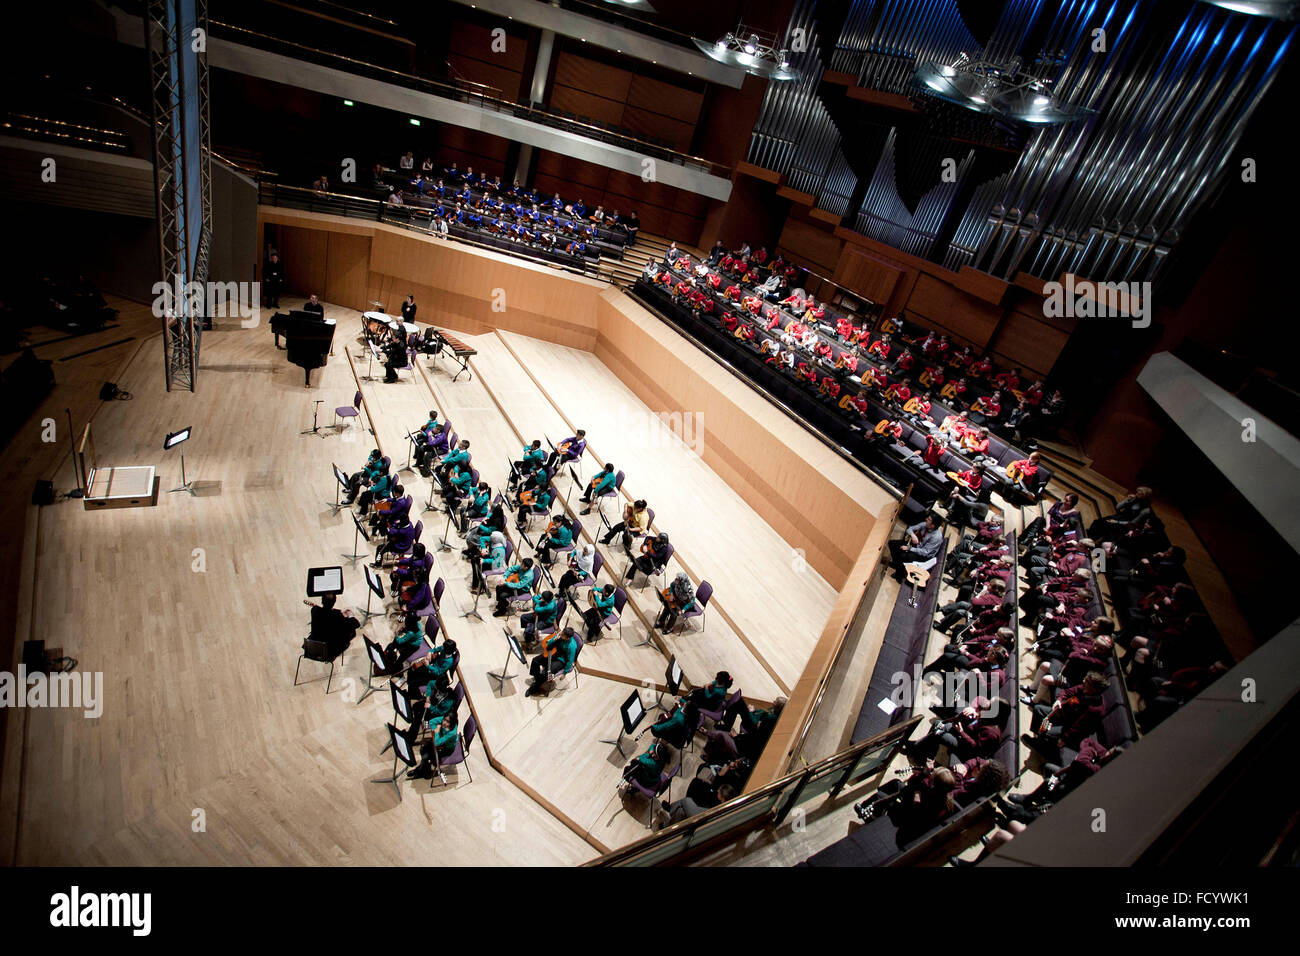 Primary school pupils take part in a guitar concert at the Bridgewater Hall .   general view of the stage - Stock Image